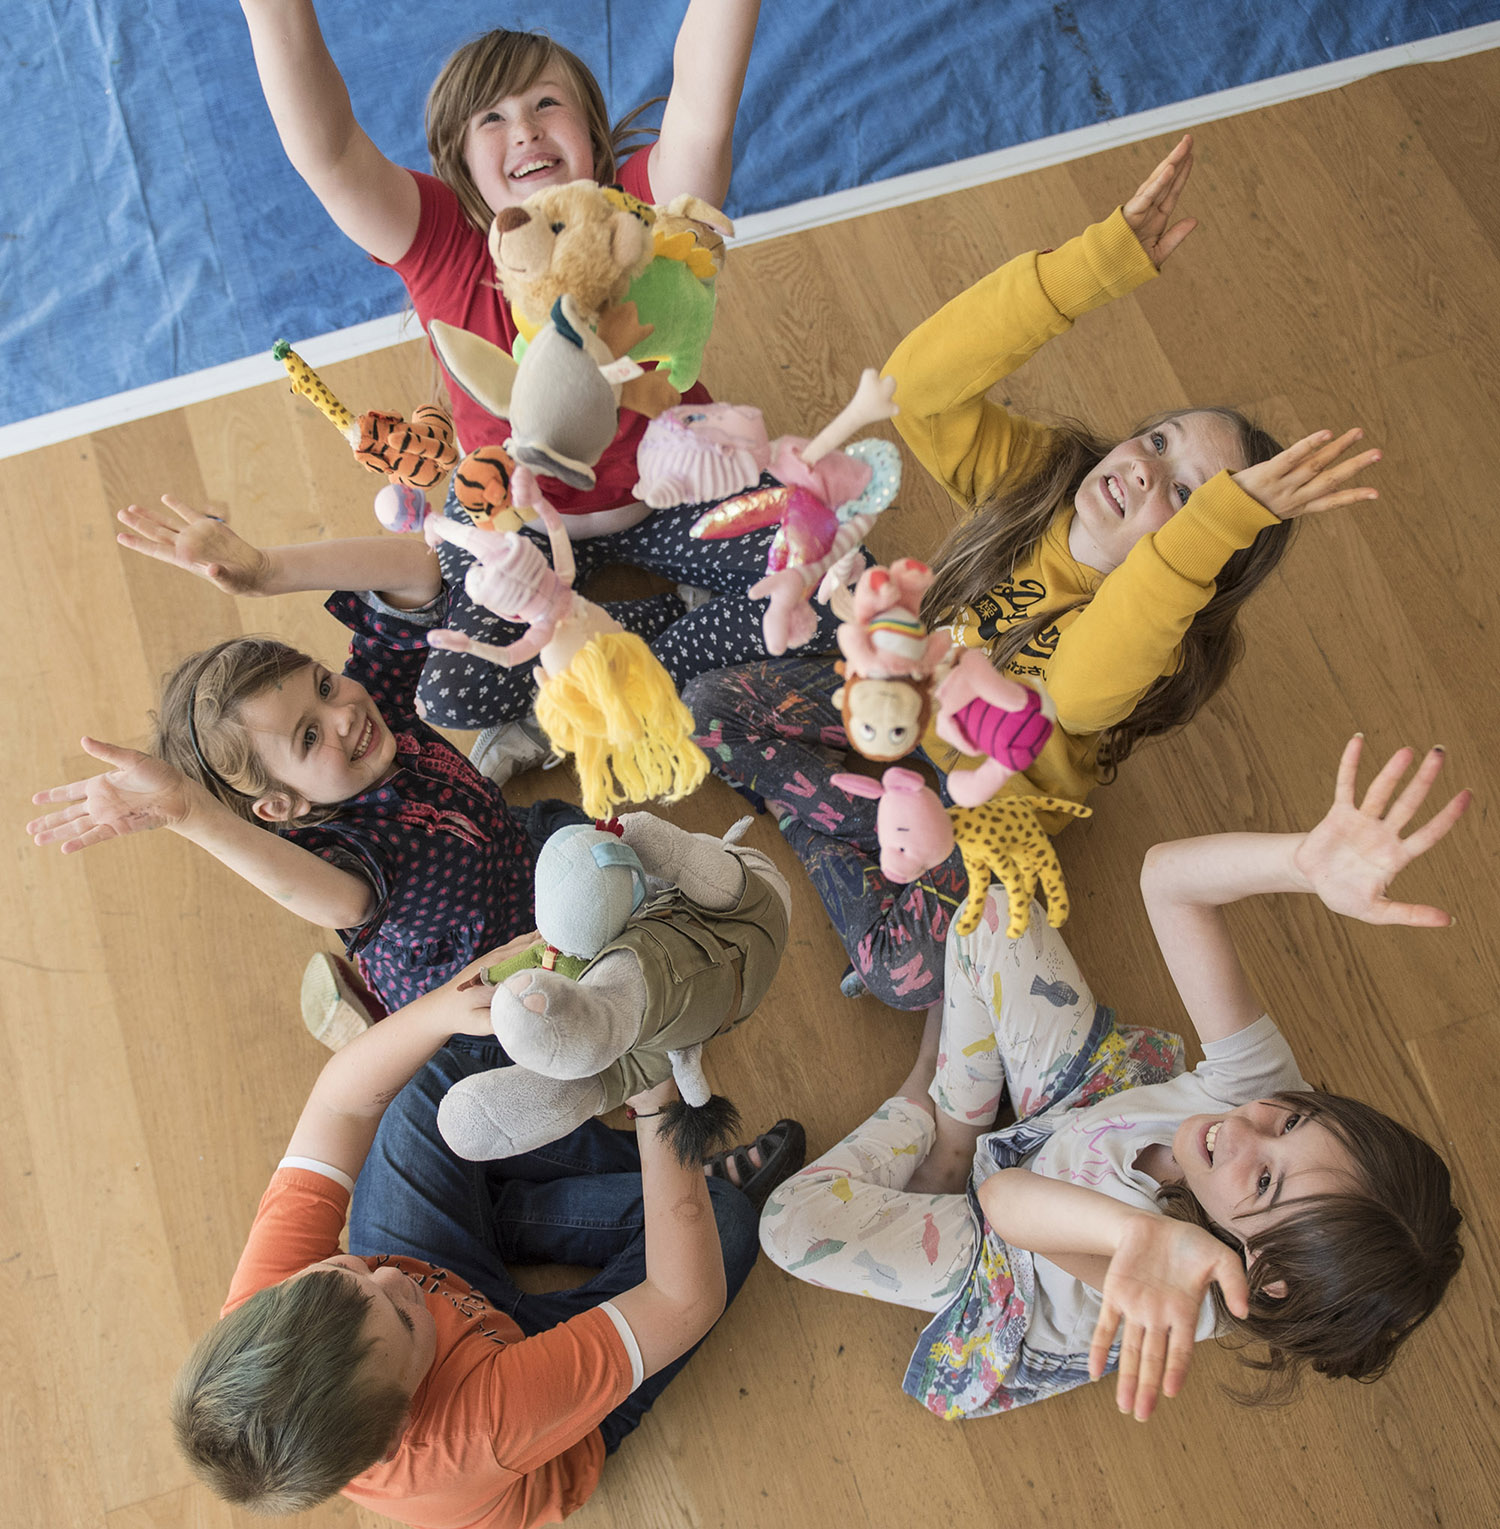 childrens workshop de la warr pavilion